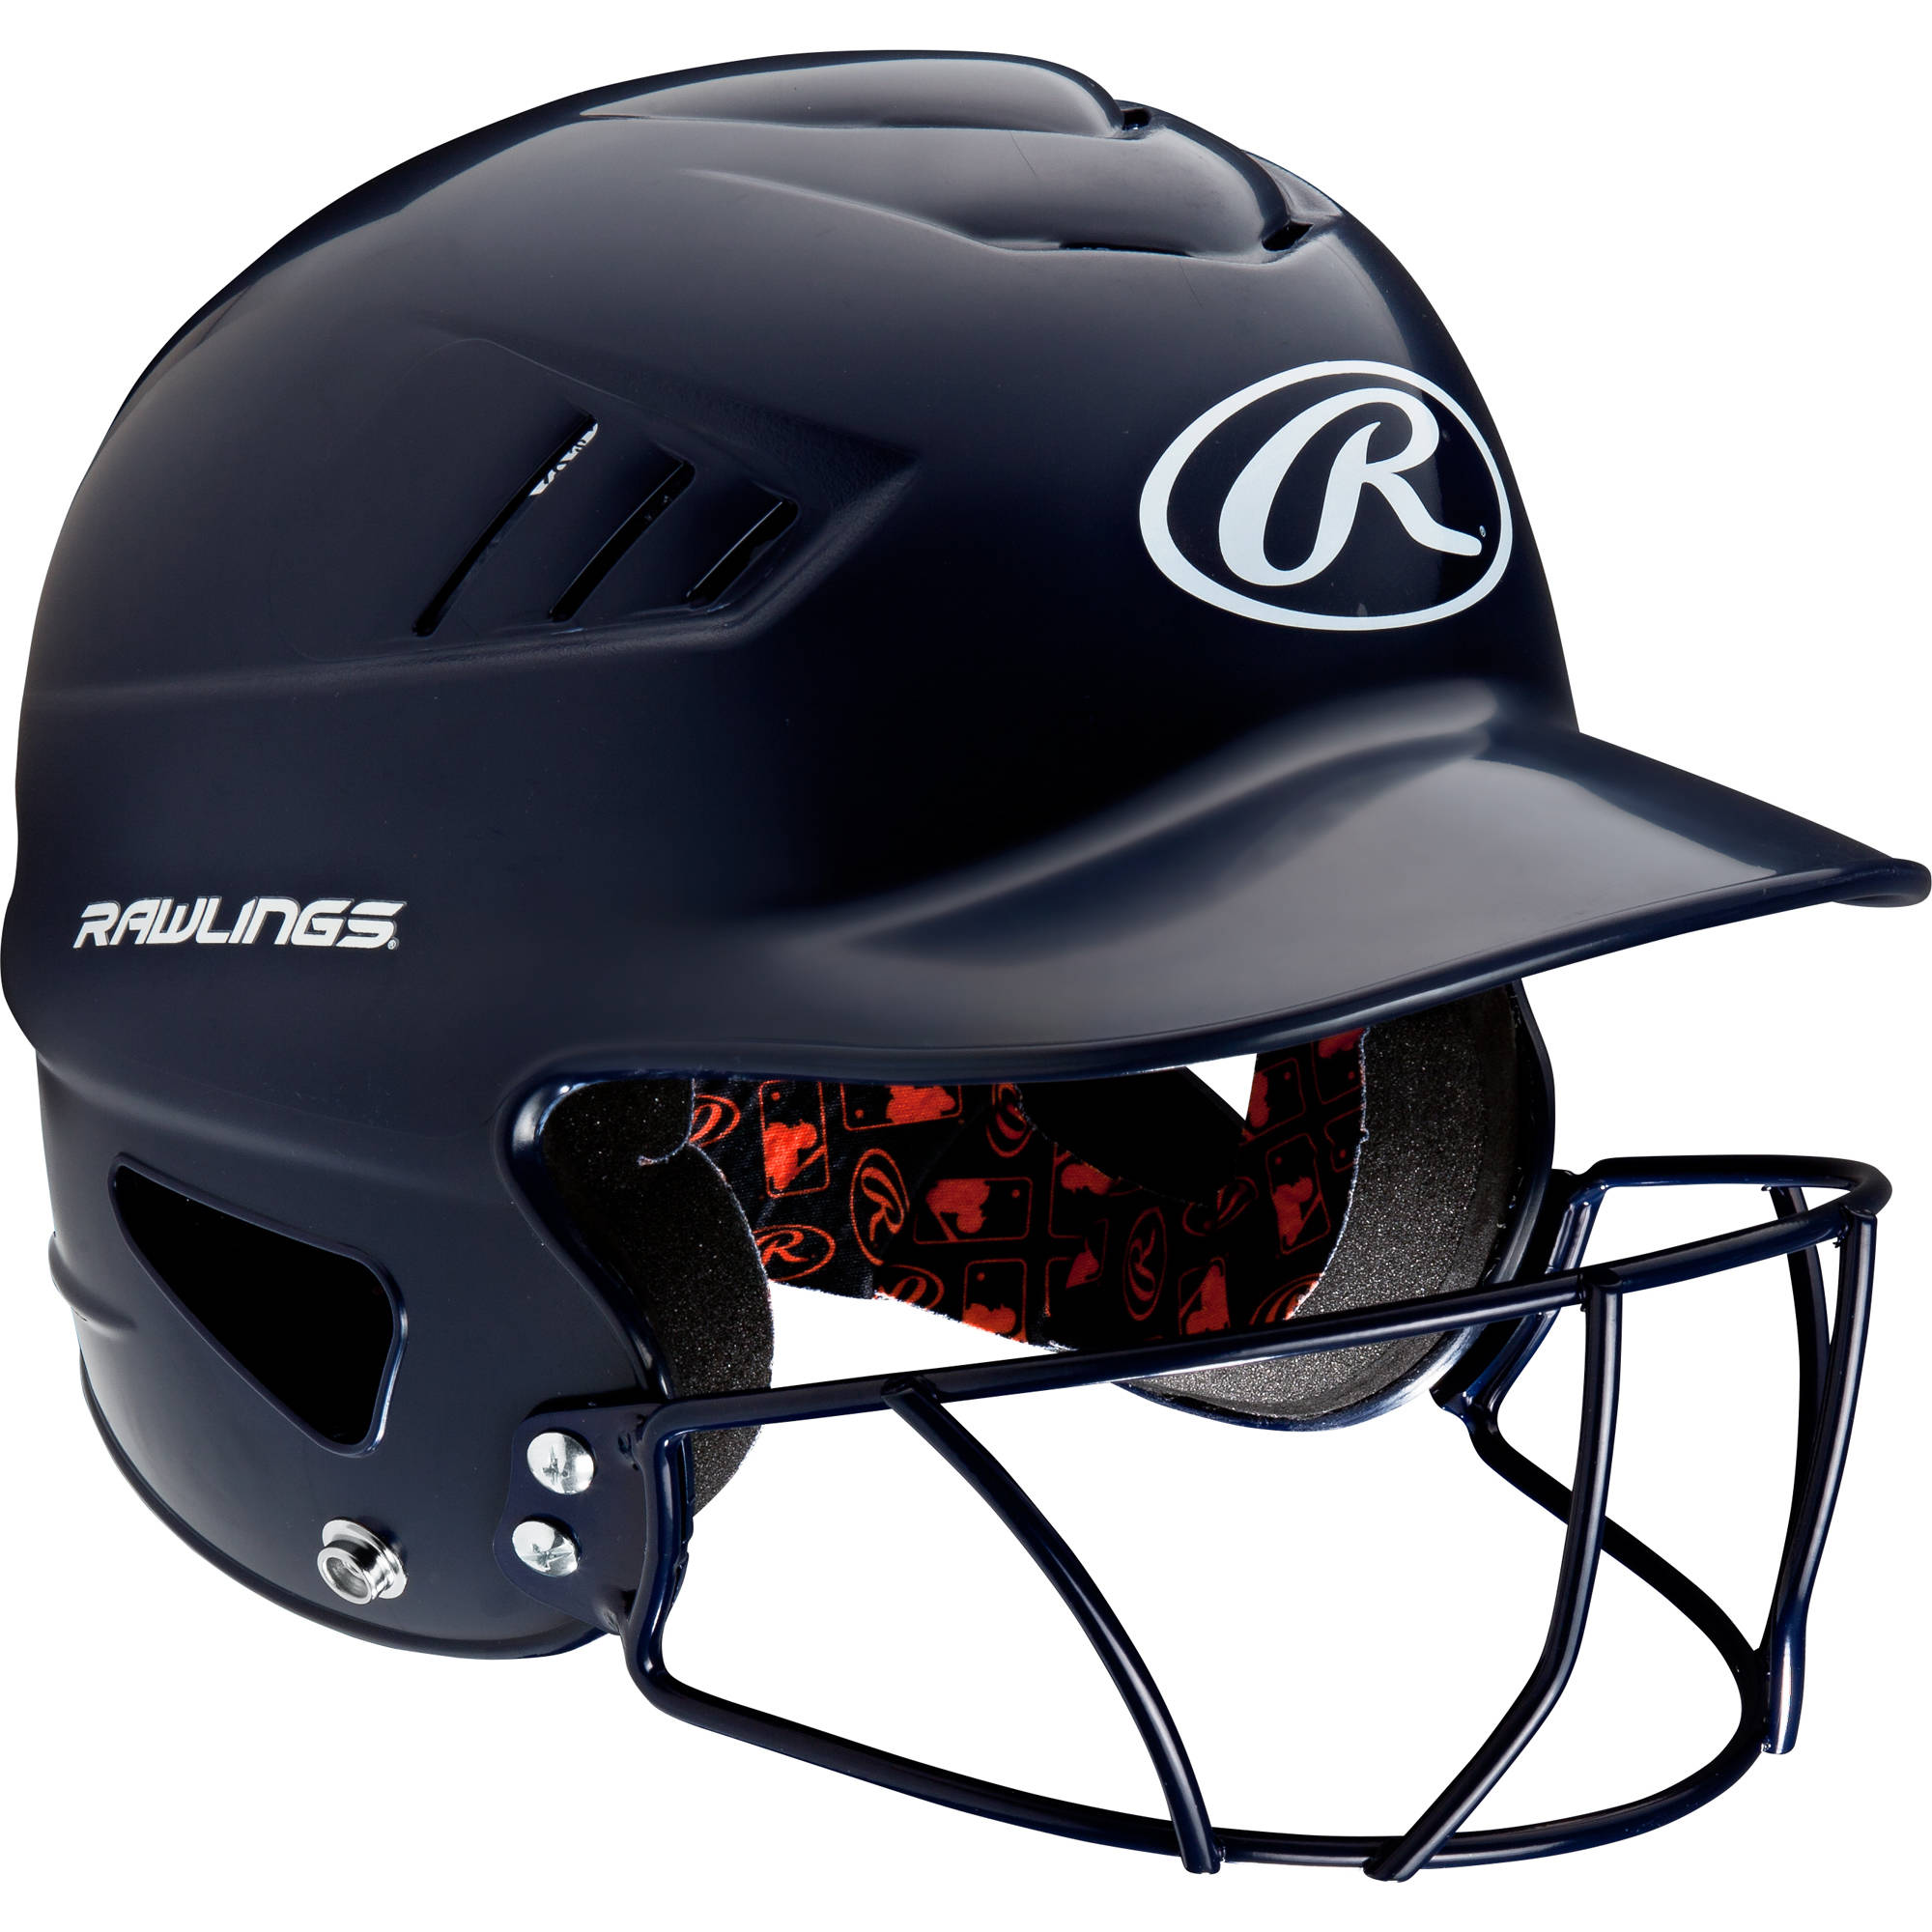 Rawlings Coolflo Helmet with Mask, Navy Blue